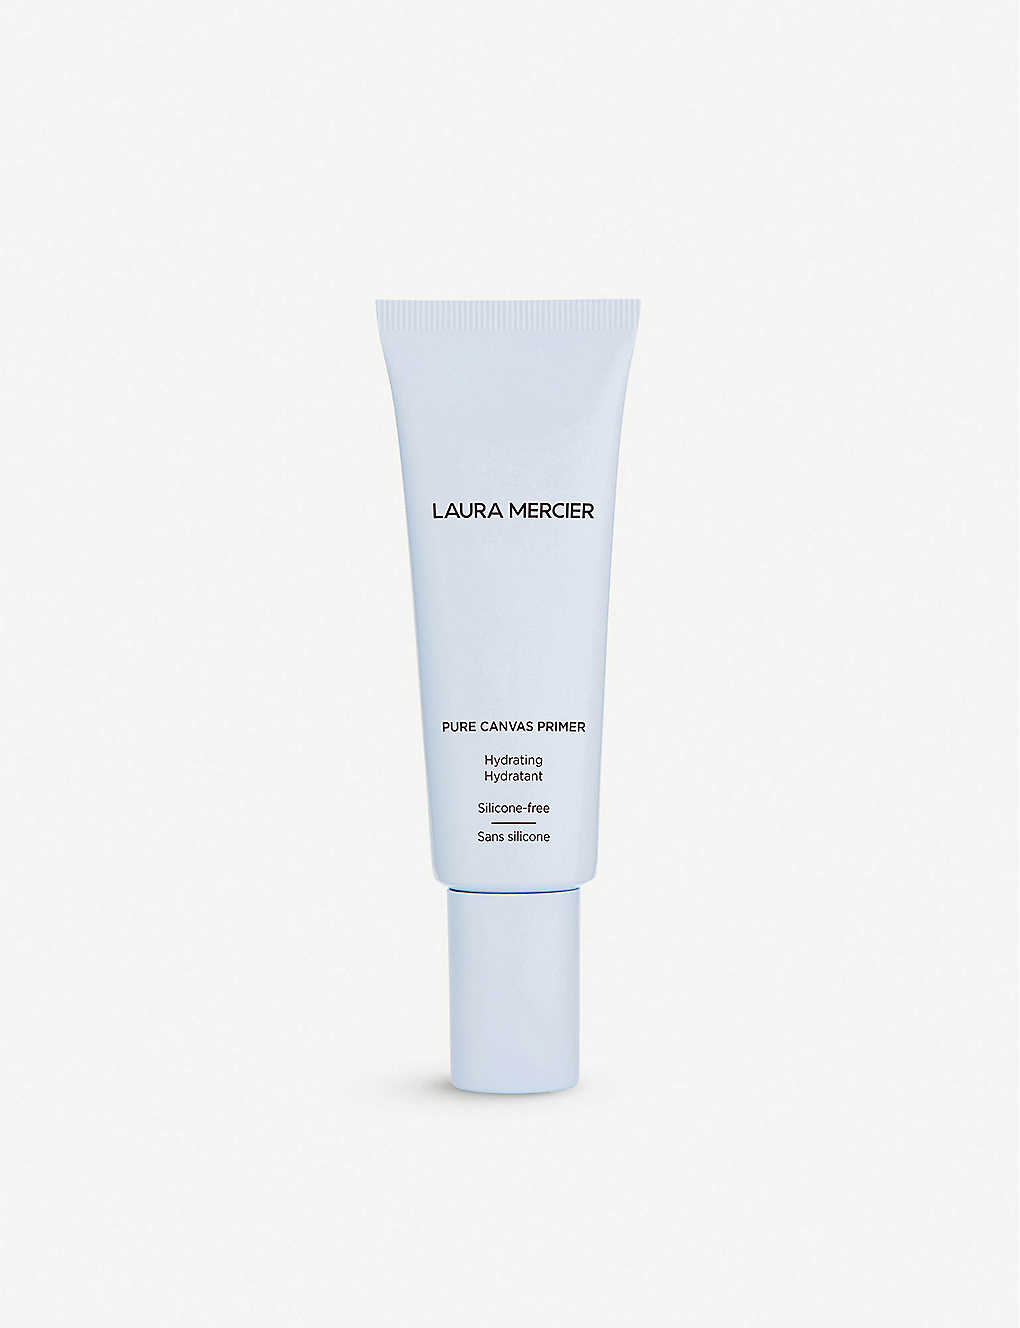 LAURA MERCIER: Pure Canvas Primer Hydrating 50ml